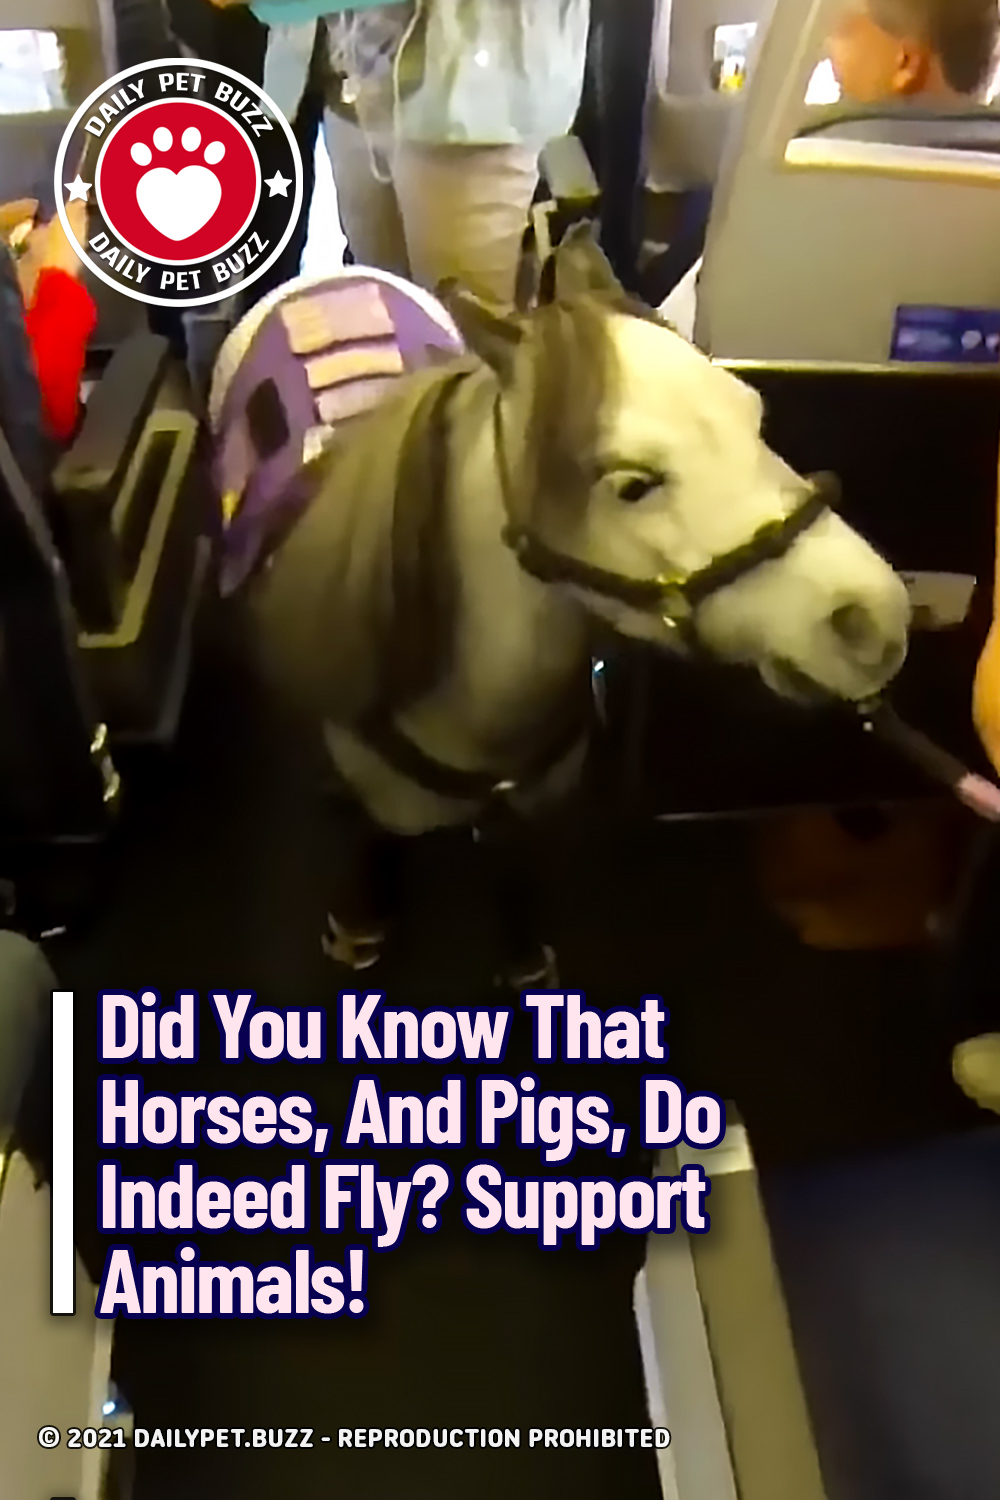 Did You Know That Horses, And Pigs, Do Indeed Fly? Support Animals!